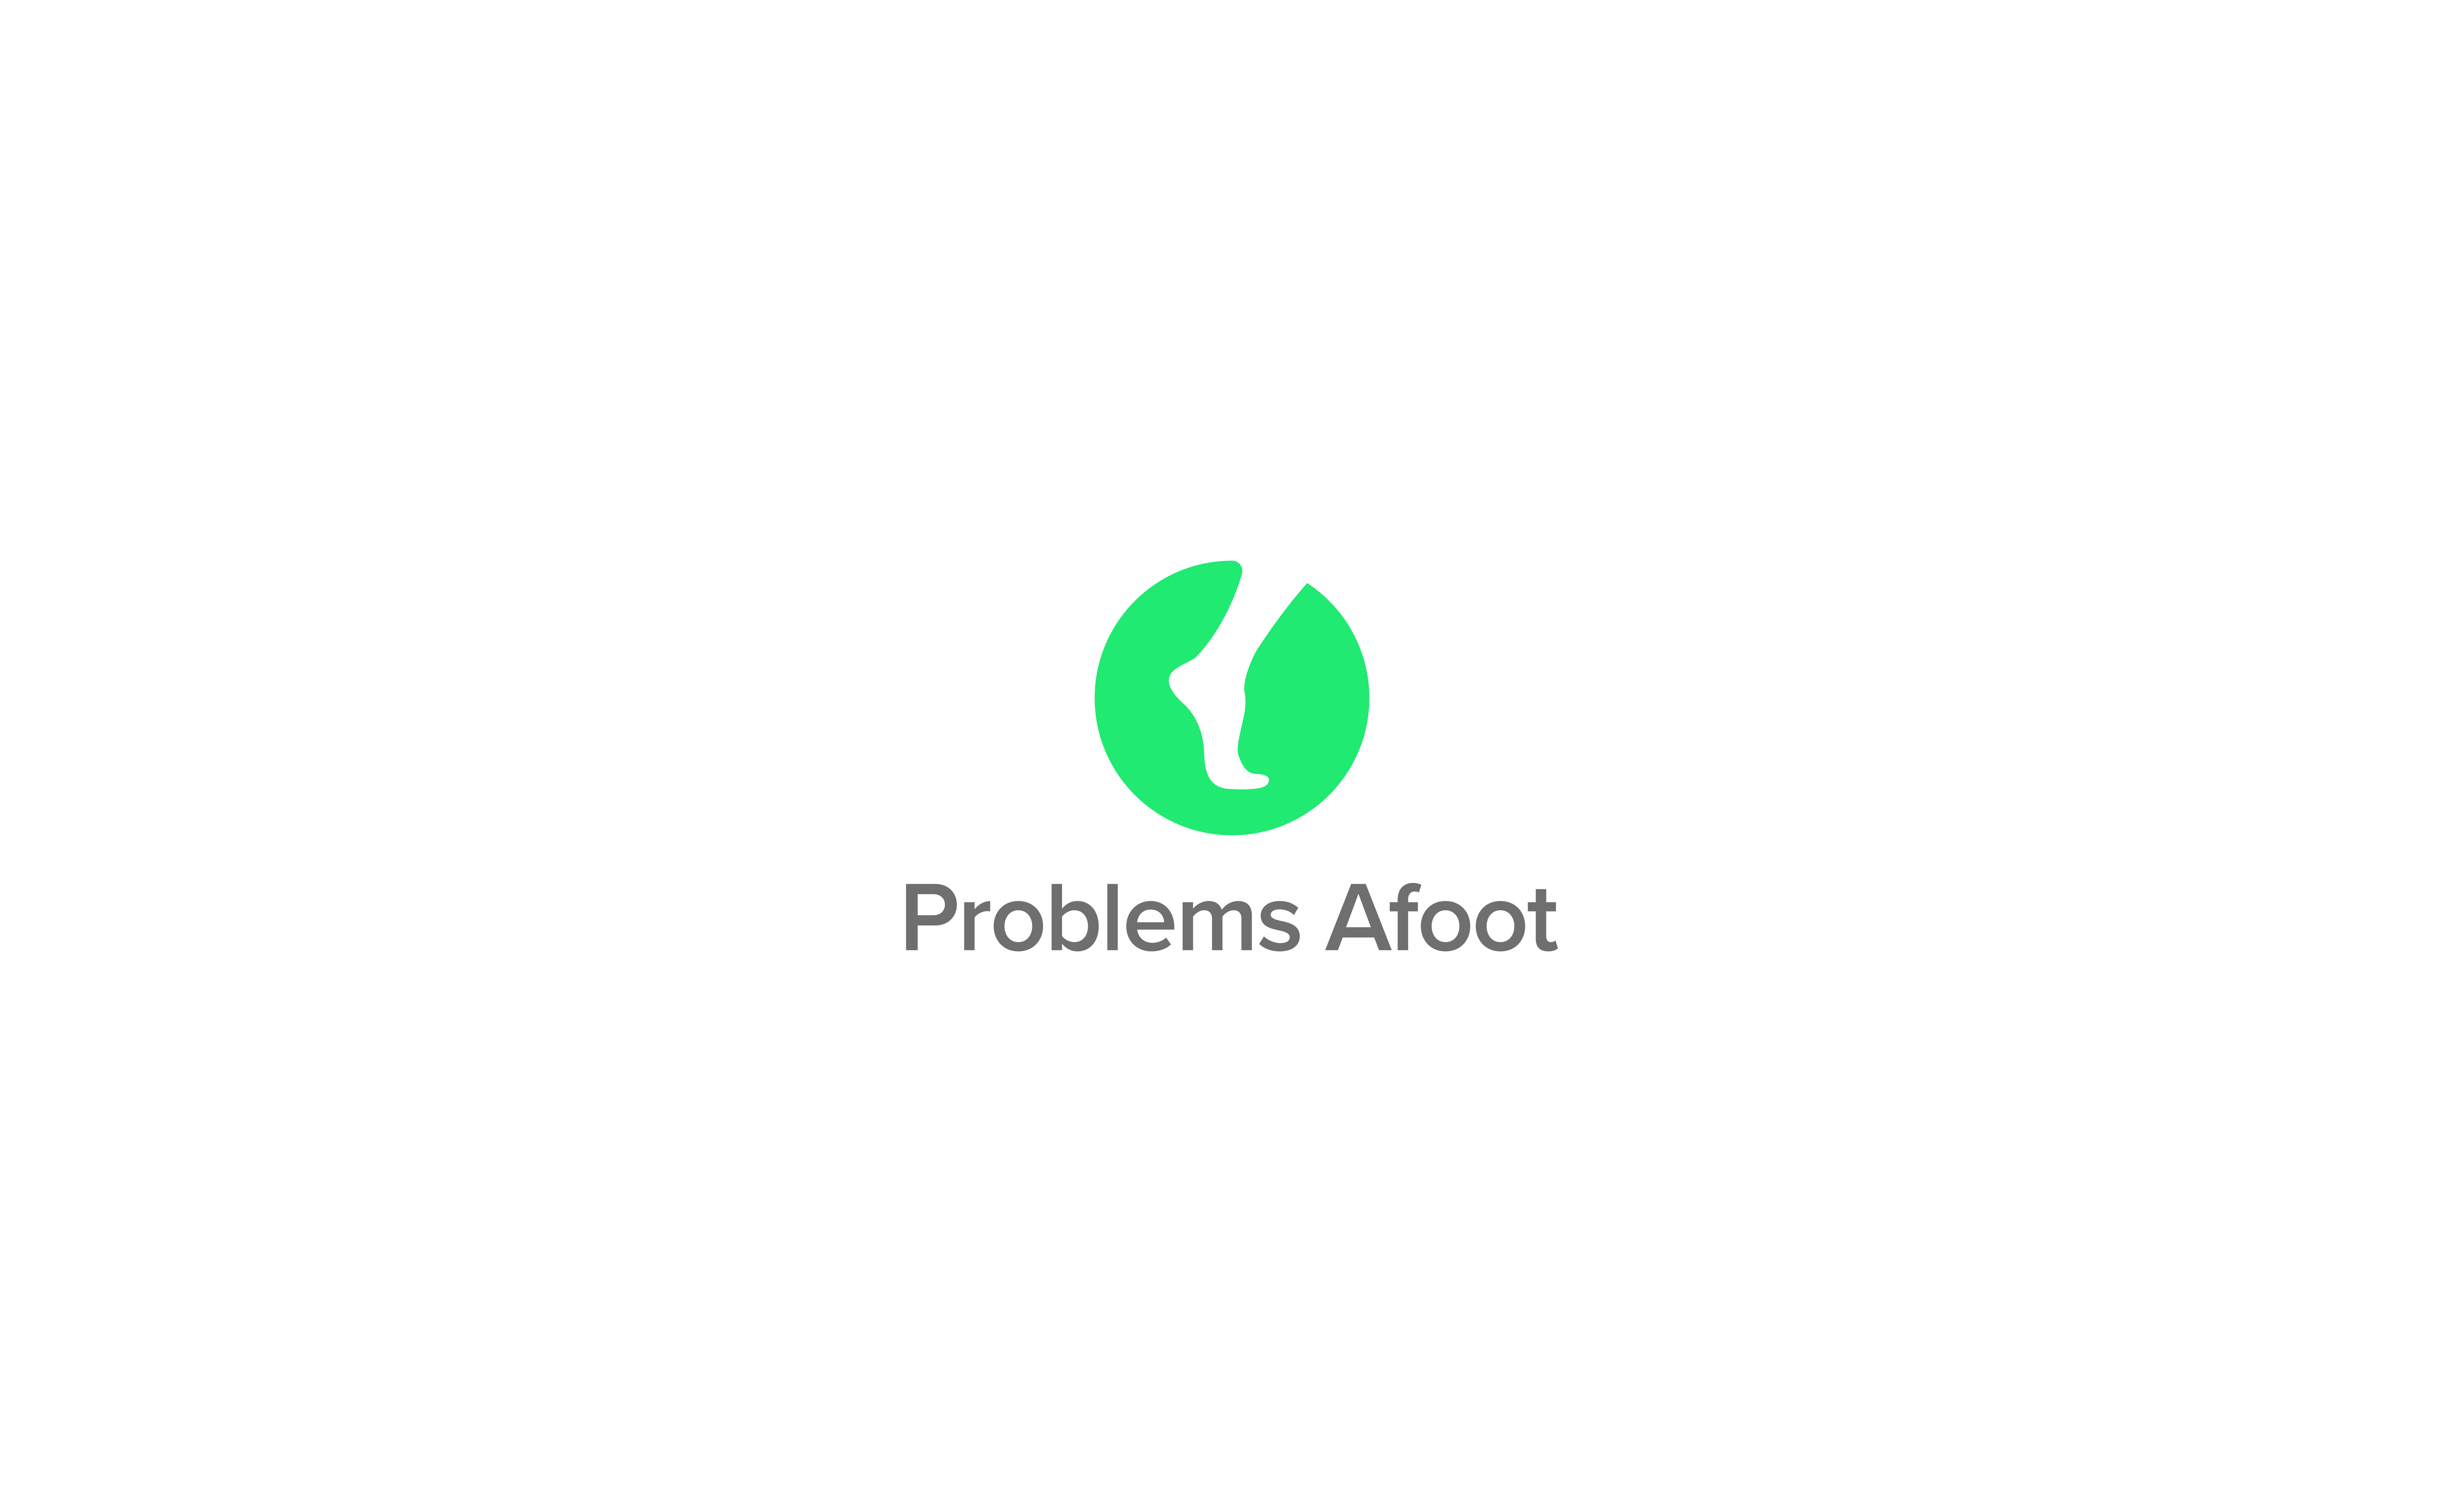 Problems Afoot company logo